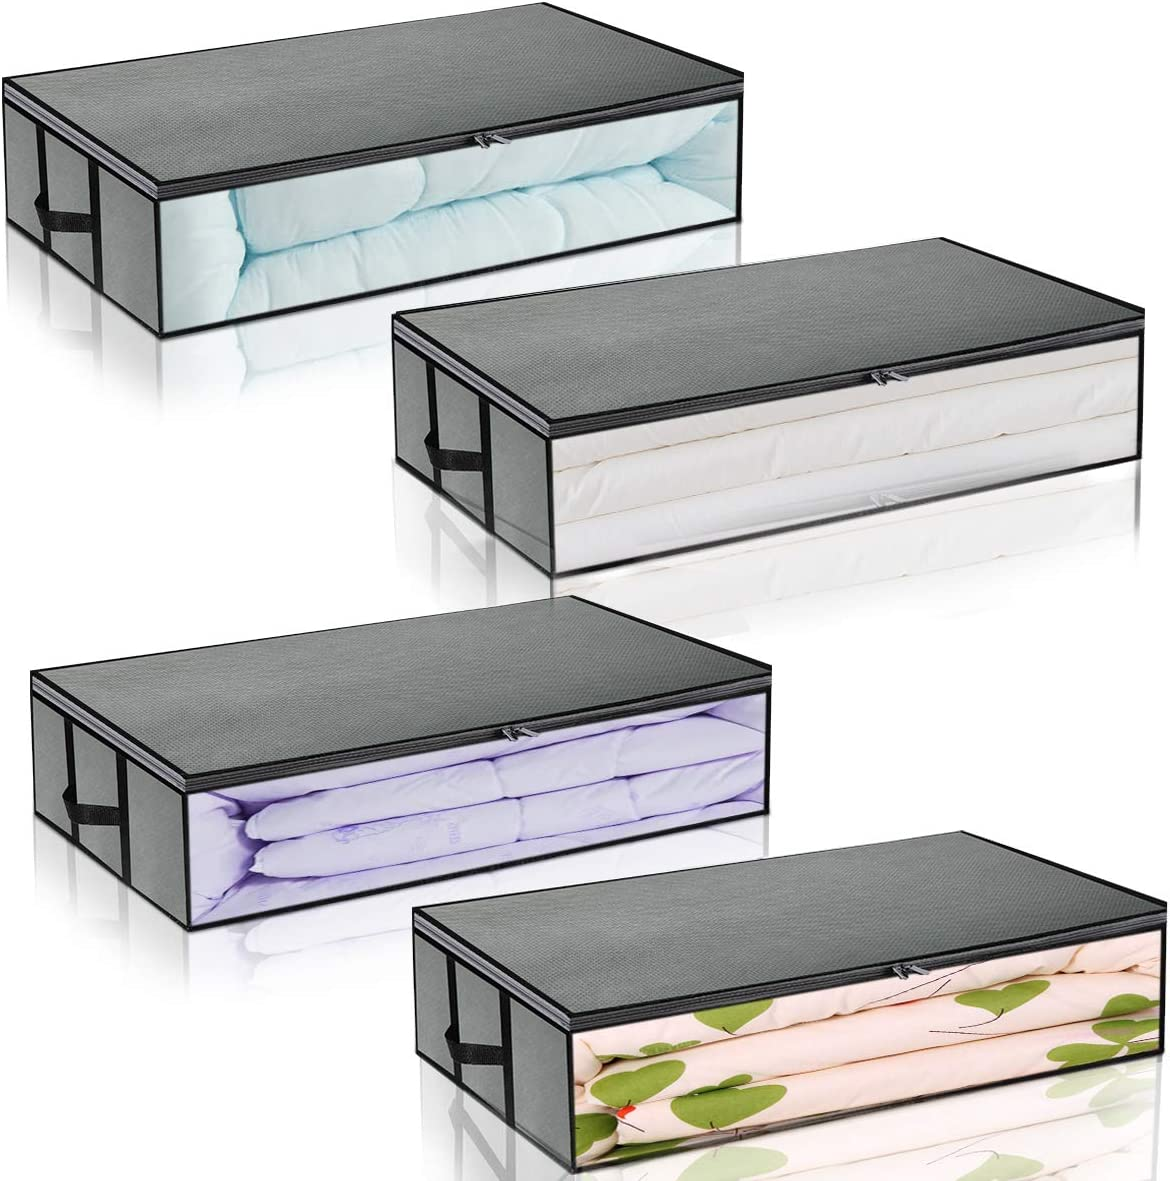 Underbed Storage Bag Foldable Container 4-pack Large Capacity Under the bed Storage Bags with Zippers and Handles Grey Transparent Window